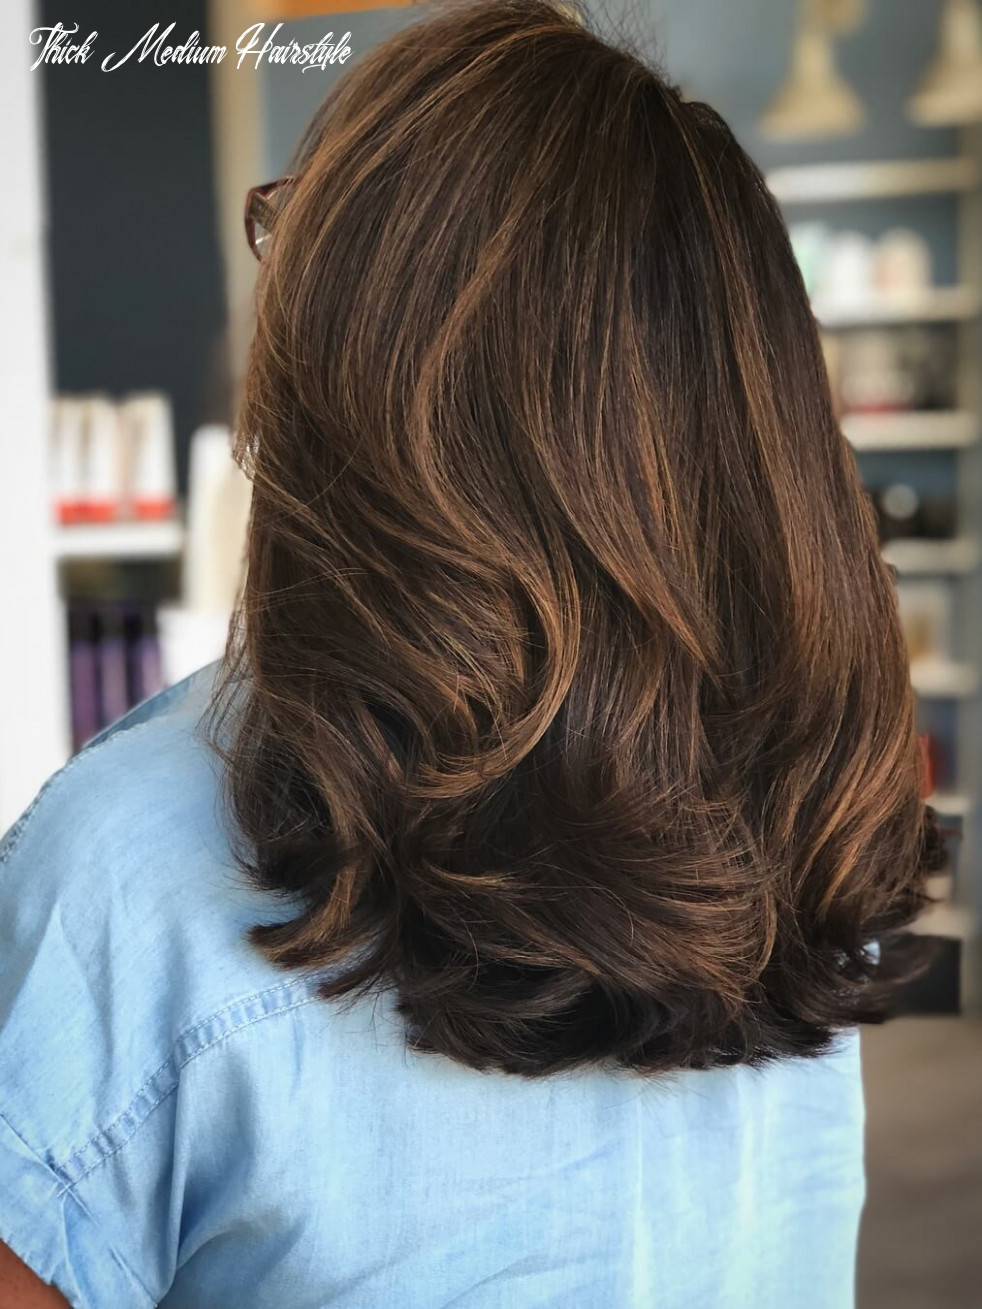 9 gorgeous medium hairstyles for thick hair women   hairdo hairstyle thick medium hairstyle